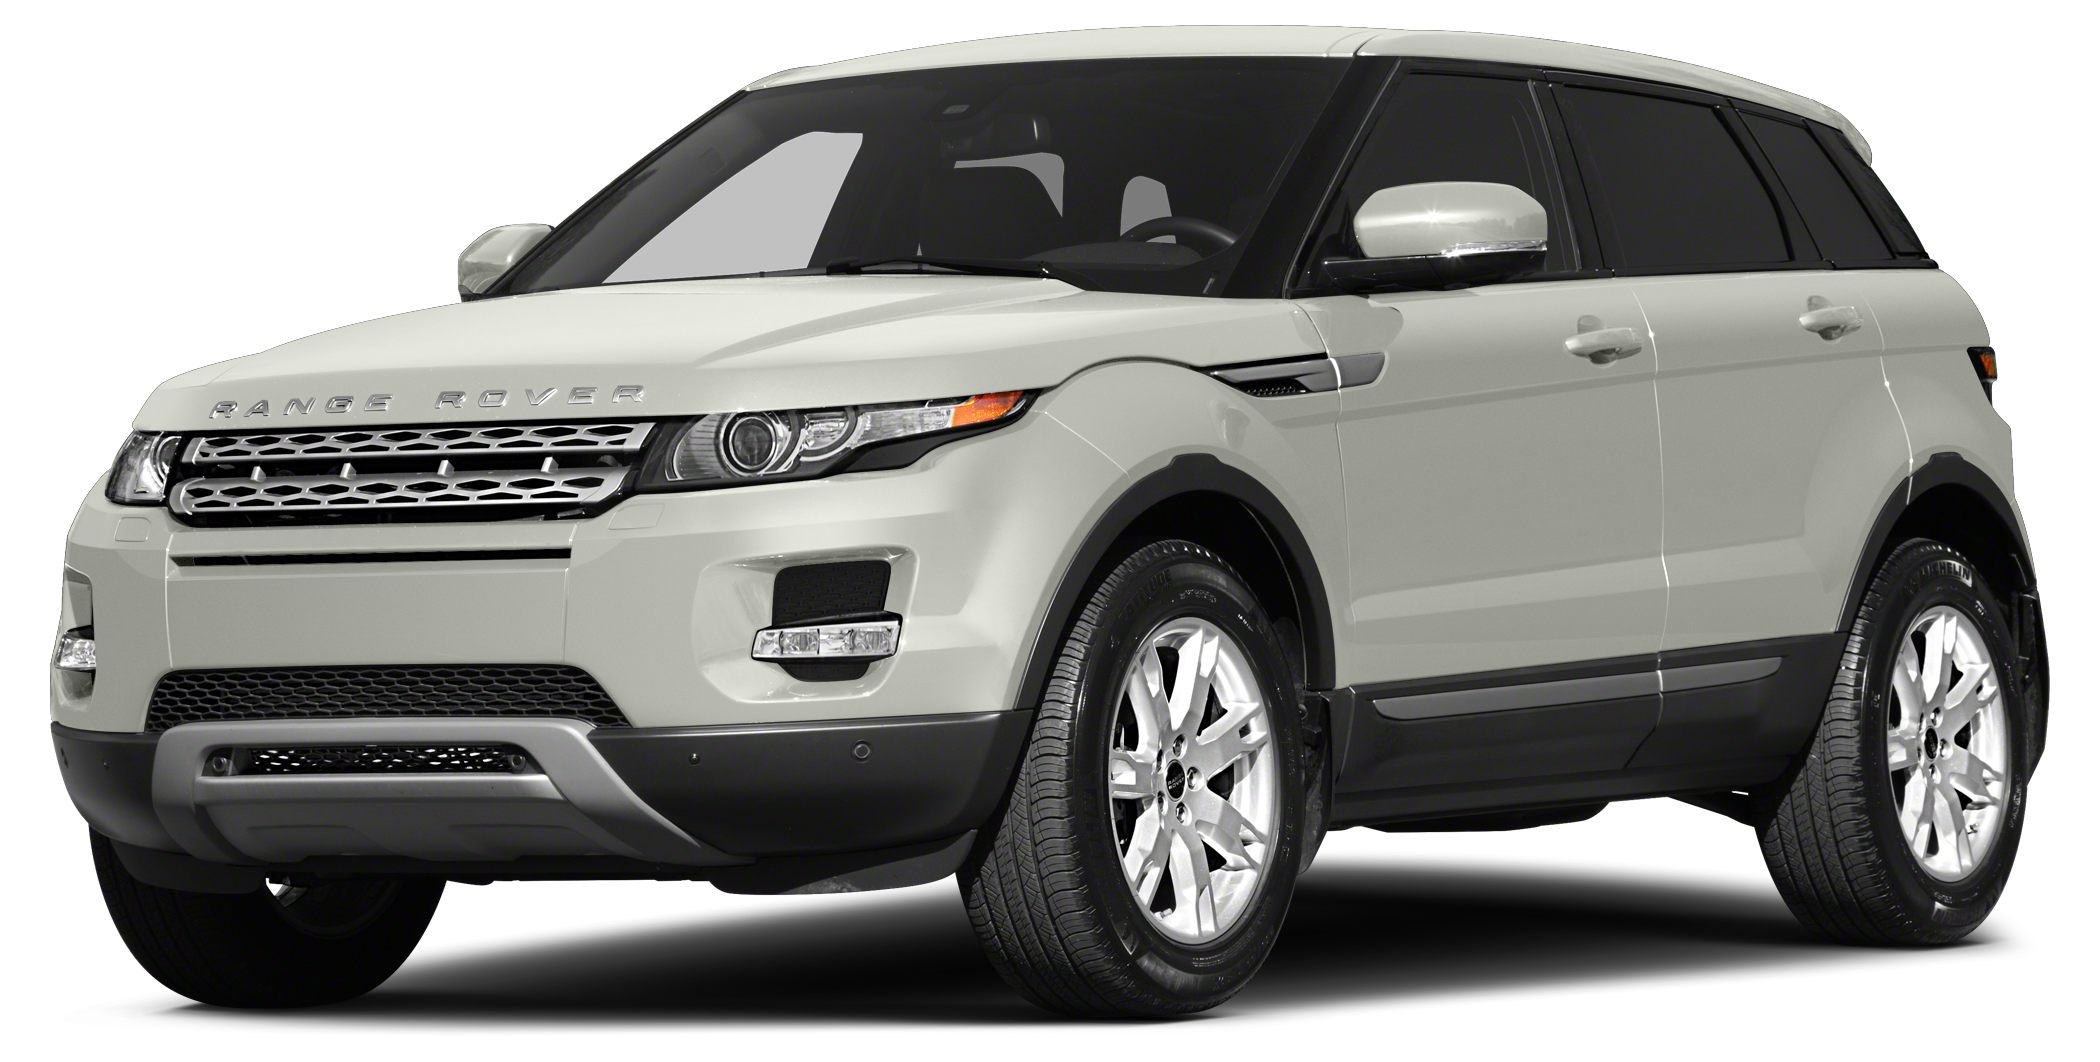 2013 Land Rover Range Rover Evoque Pure NAVIGATION SYSTEM BLUETOOTH HID LIGHTS PREMIUM SOUND B